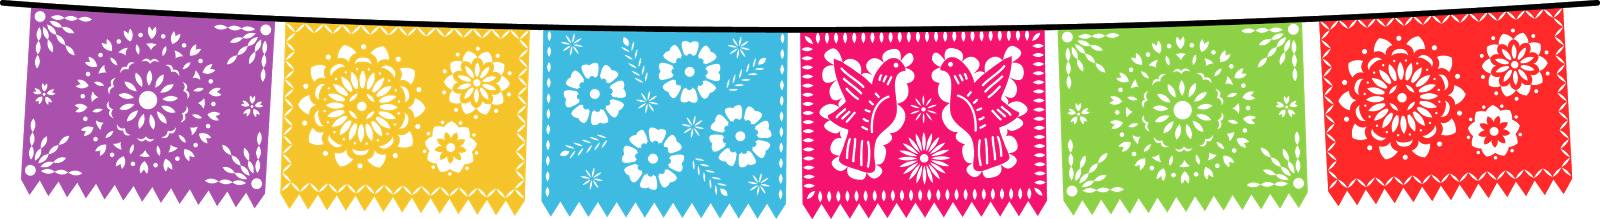 Papel picado fiesta png. Collection of mexican